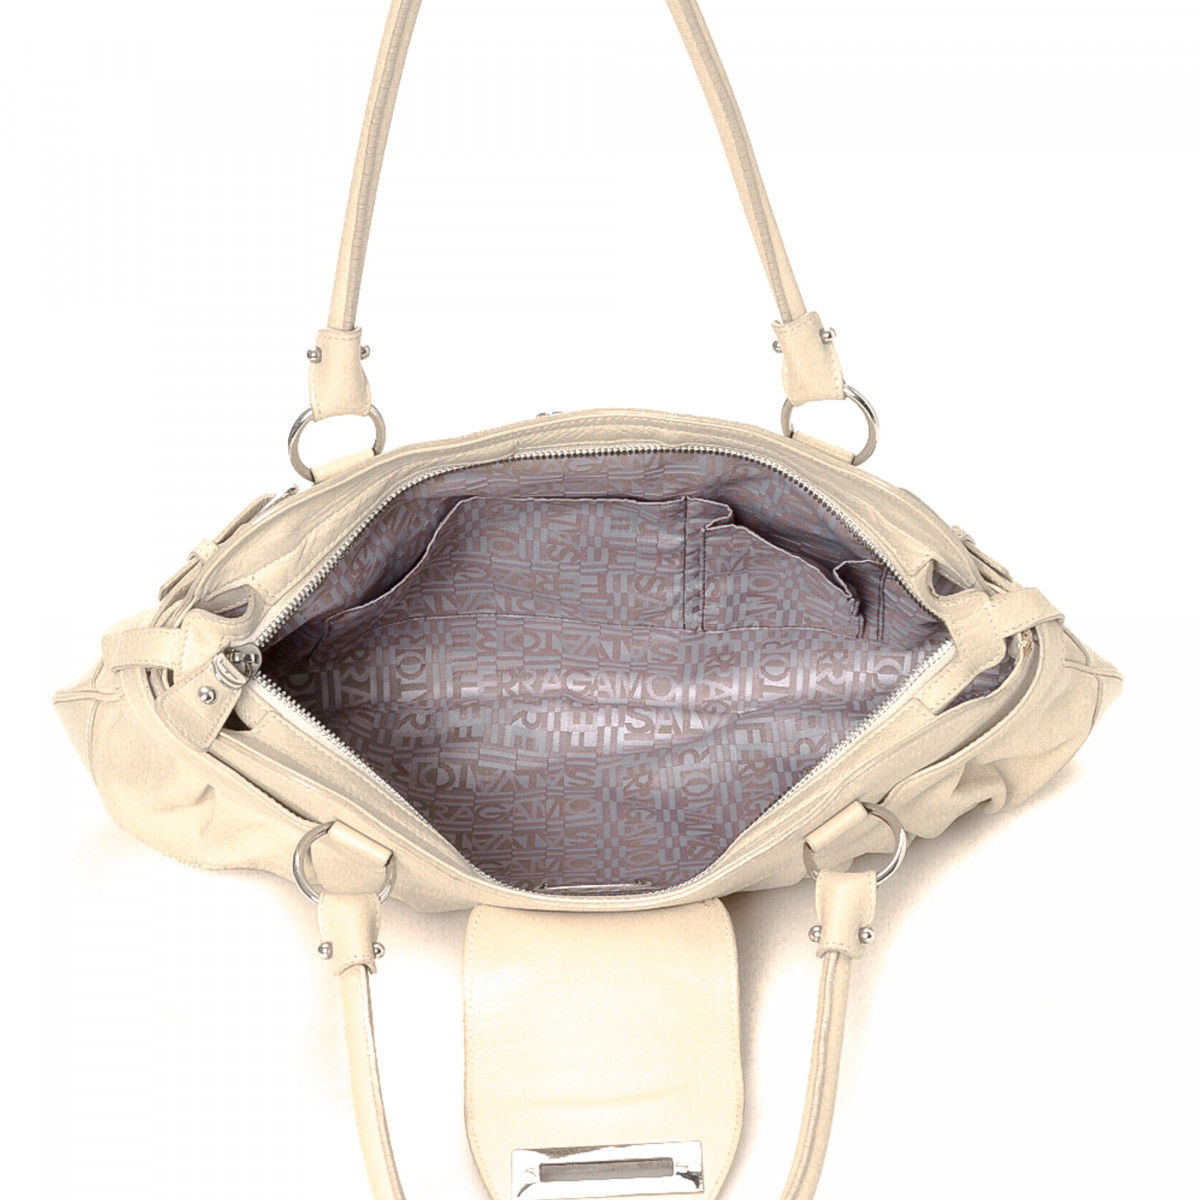 77b46afe74dc Ferragamo Marisa Shoulder Bag. Free Shipping. The authenticity of this vintage  Ferragamo Marisa shoulder bag is guaranteed by LXRandCo.